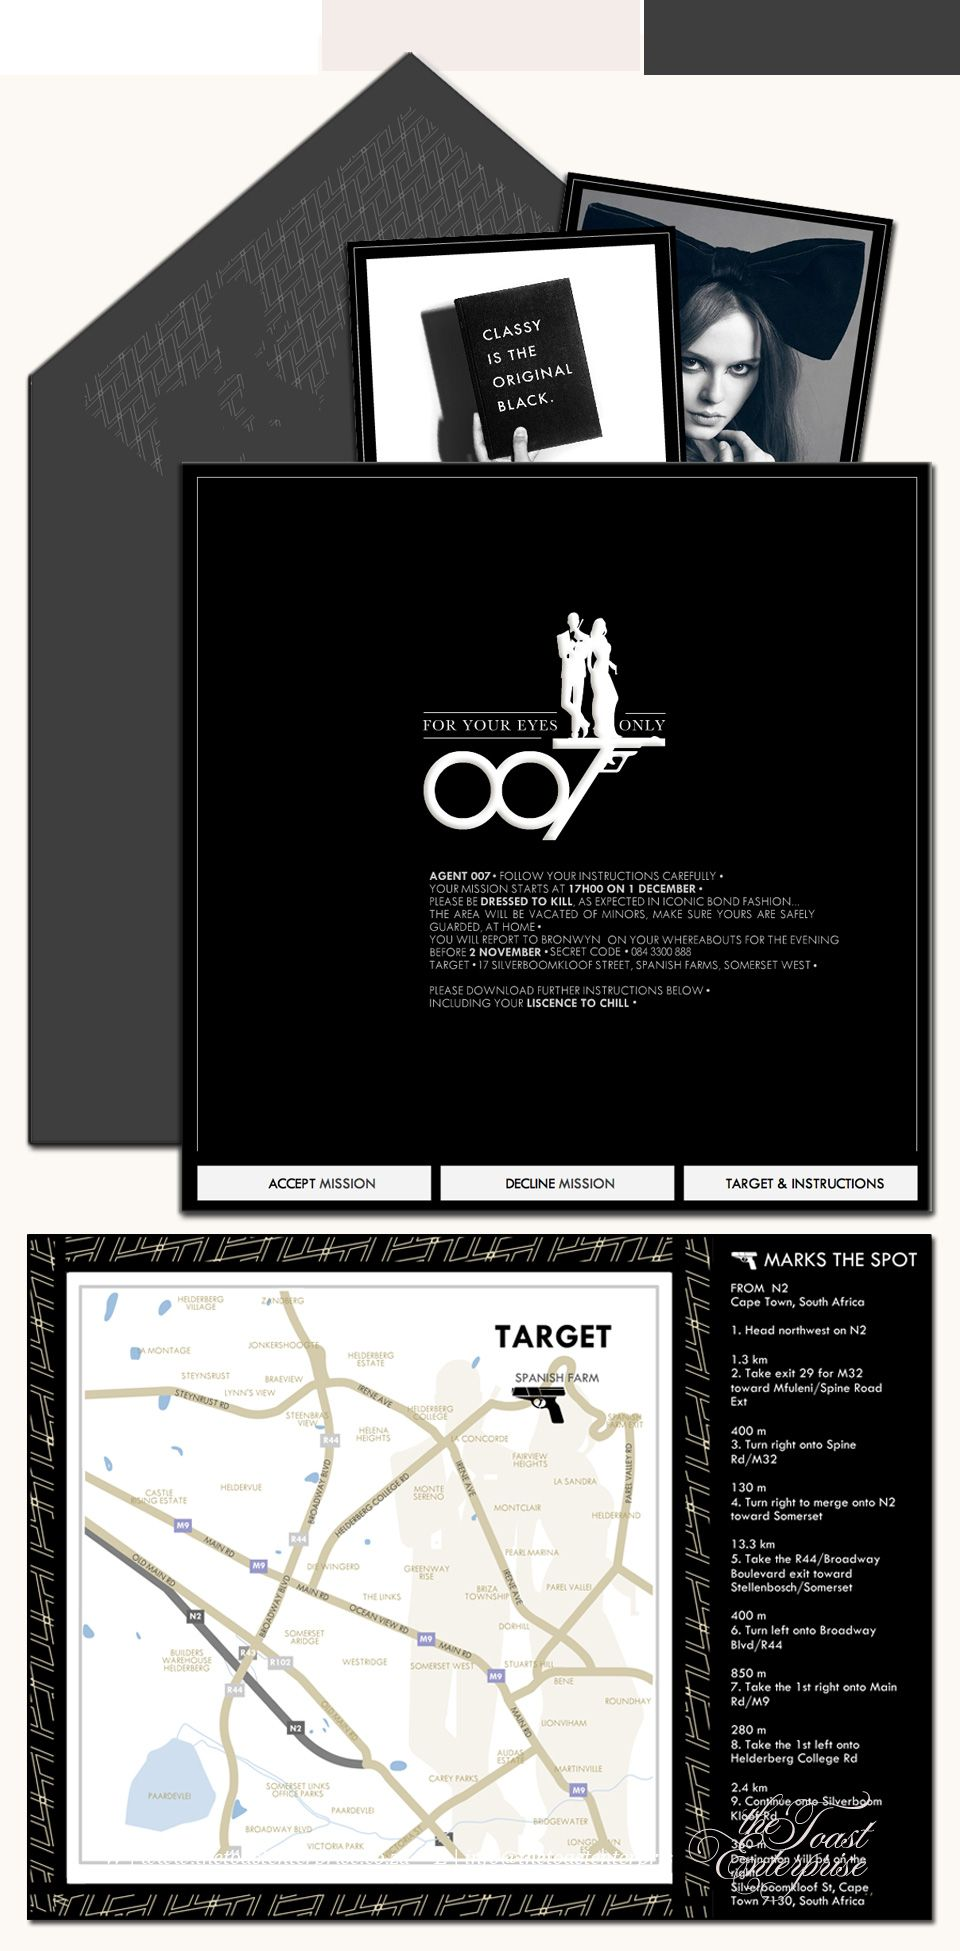 Personalized james bond 007 theme party invitations this is personalized james bond 007 theme party invitations this is happening 007 the spy who loved me pinterest james bond party invitations and james bond stopboris Choice Image